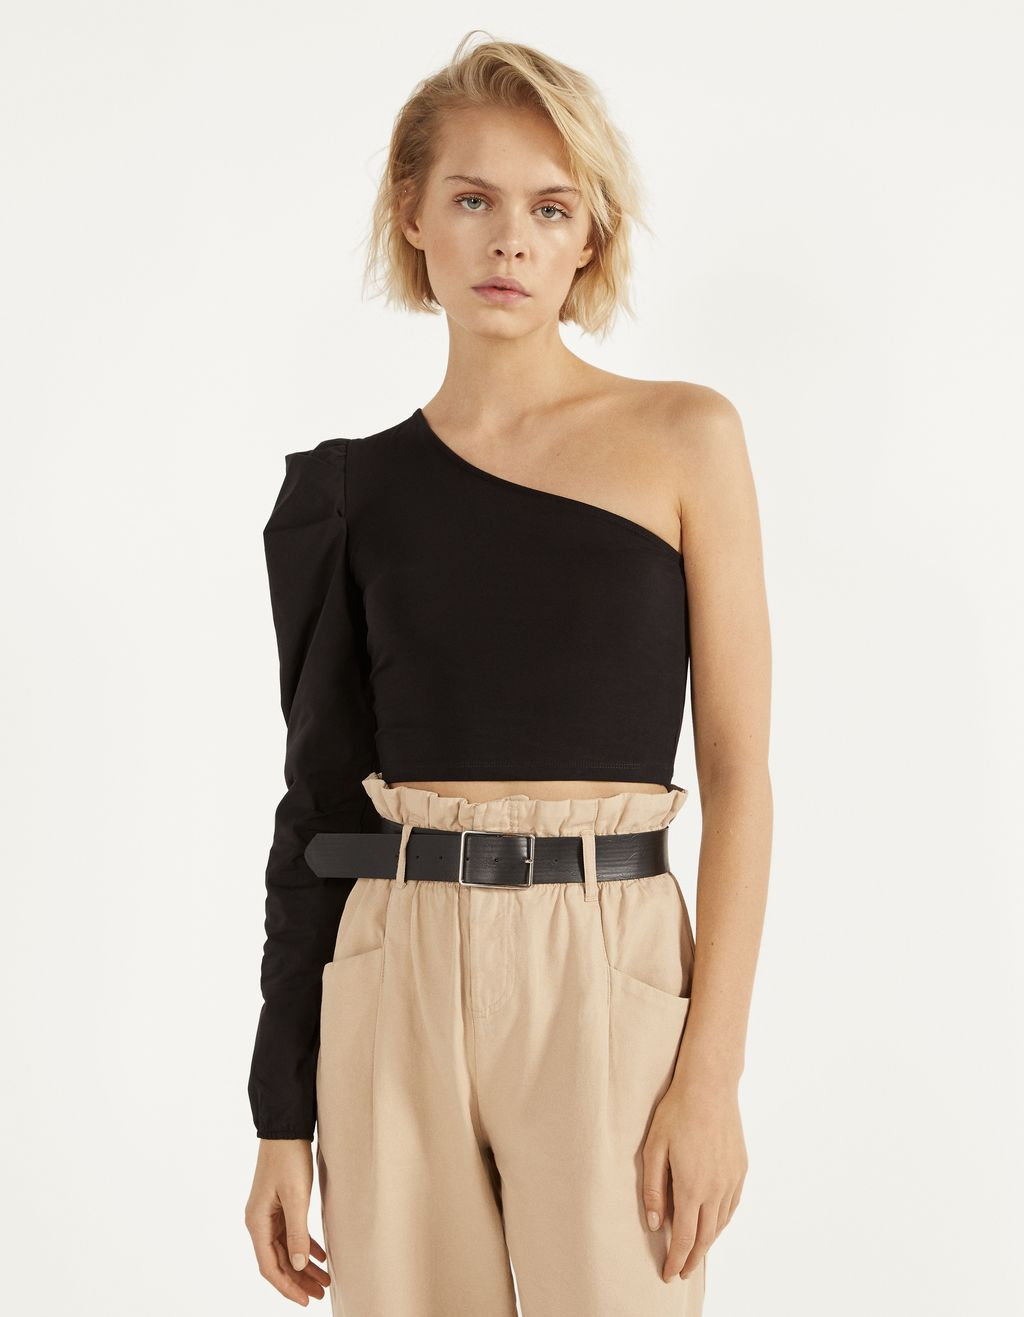 Asymmetric top with poplin sleeves